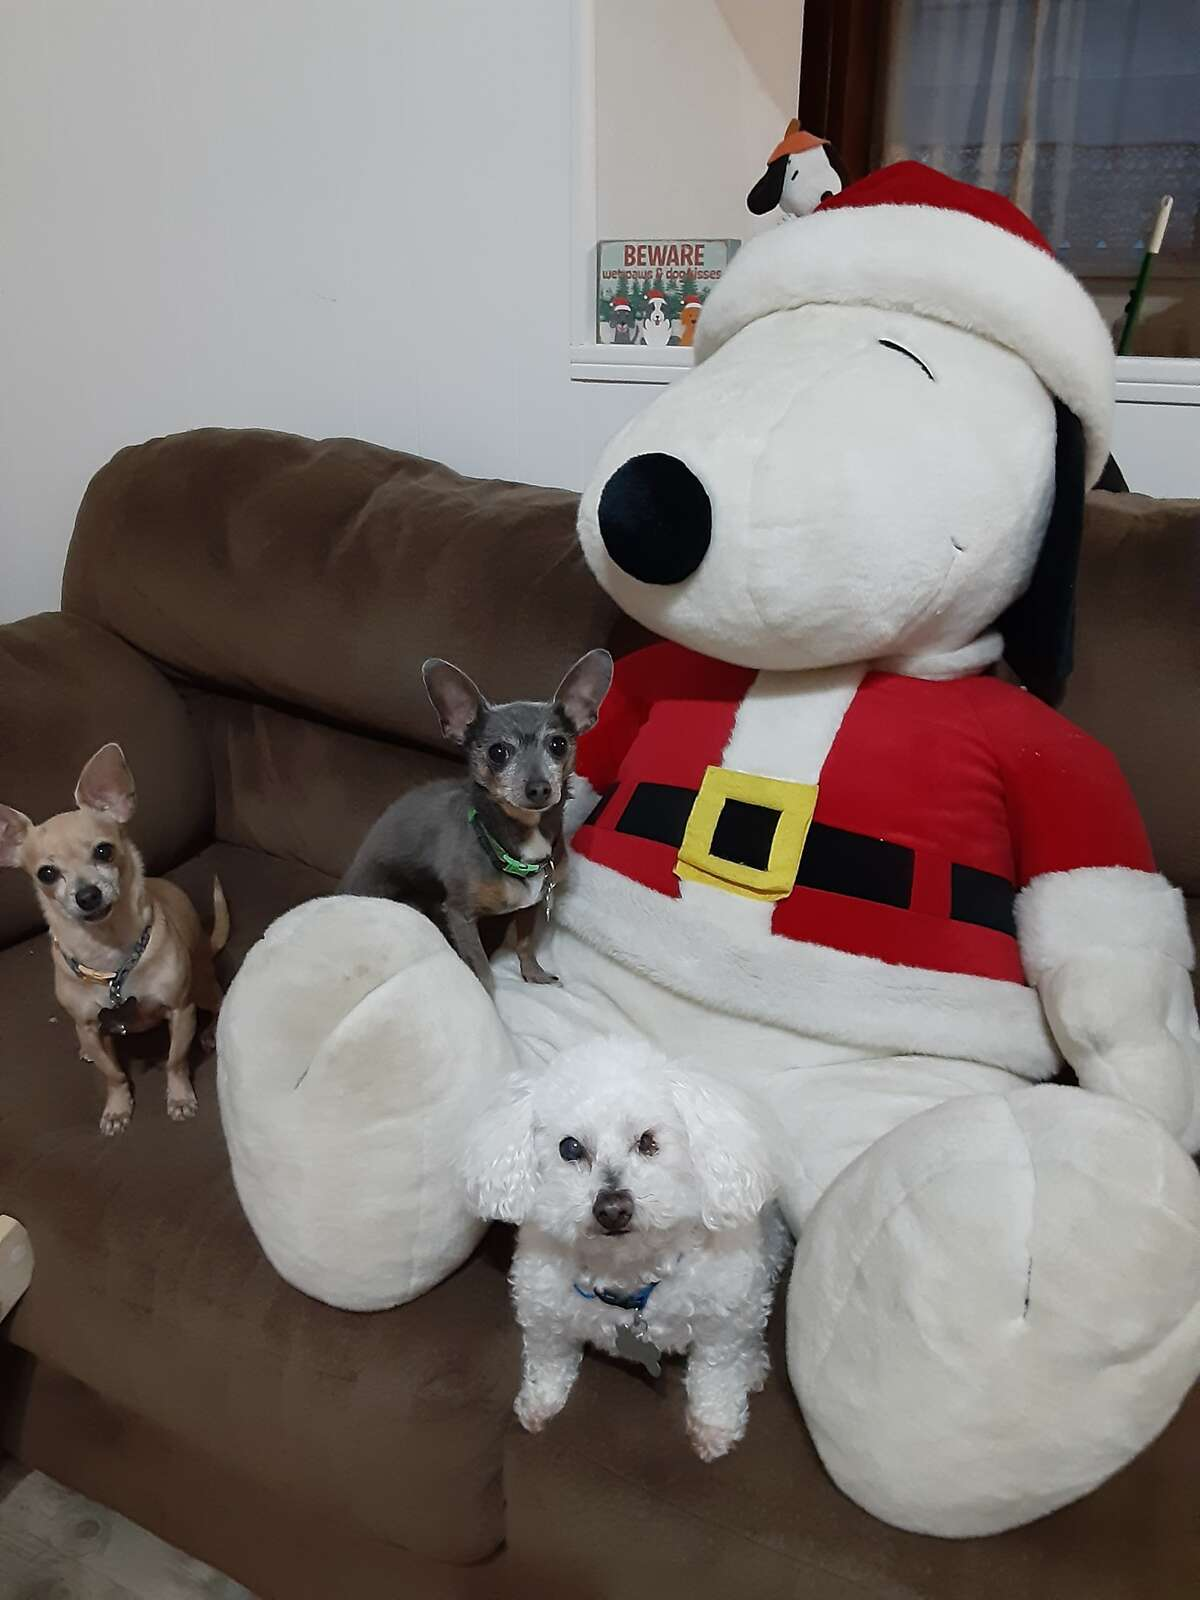 These pups didn't get a picture with Santa this year, but they got the next best thing.